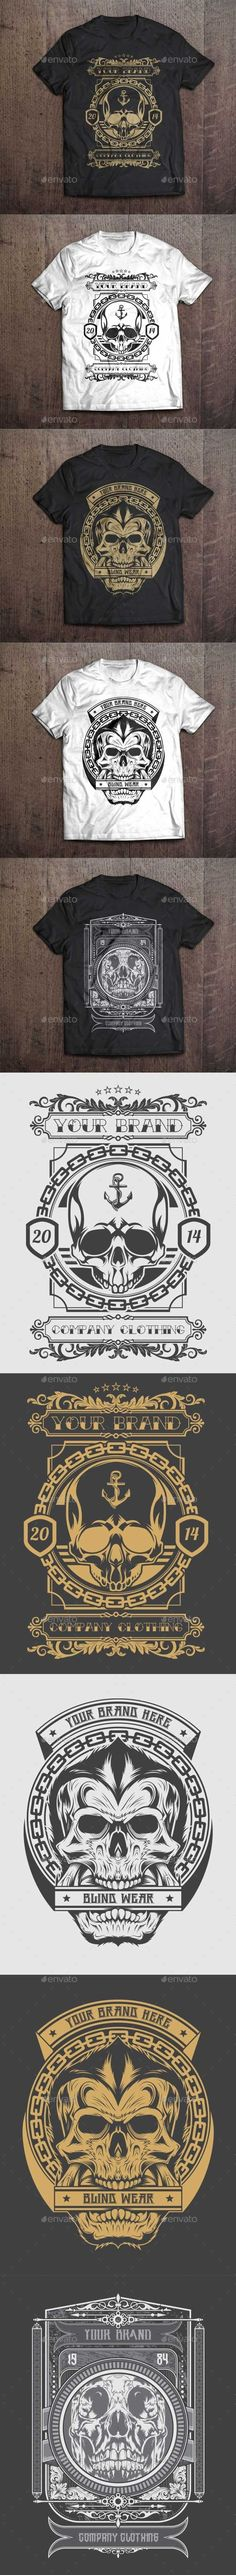 3 #T-Shirt #Illustration - Skull Theme - #Designs T-Shirts Download here: https://graphicriver.net/item/3-tshirt-illustration-skull-theme/9475040?ref=alena994